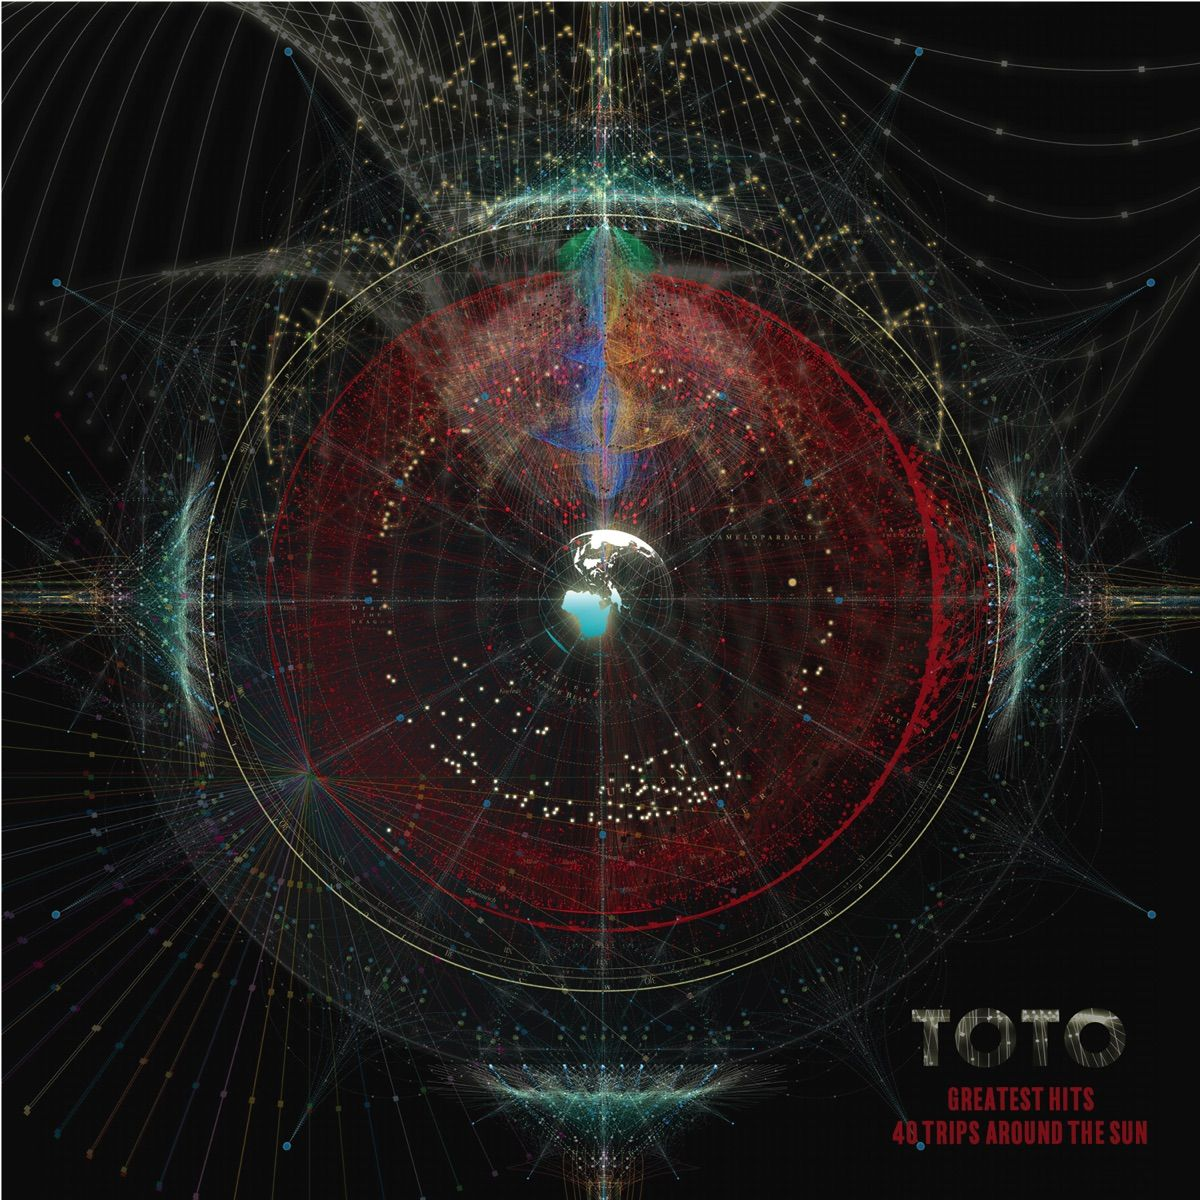 Toto - Greatest Hits: 40 Trips Around The Sun album cover